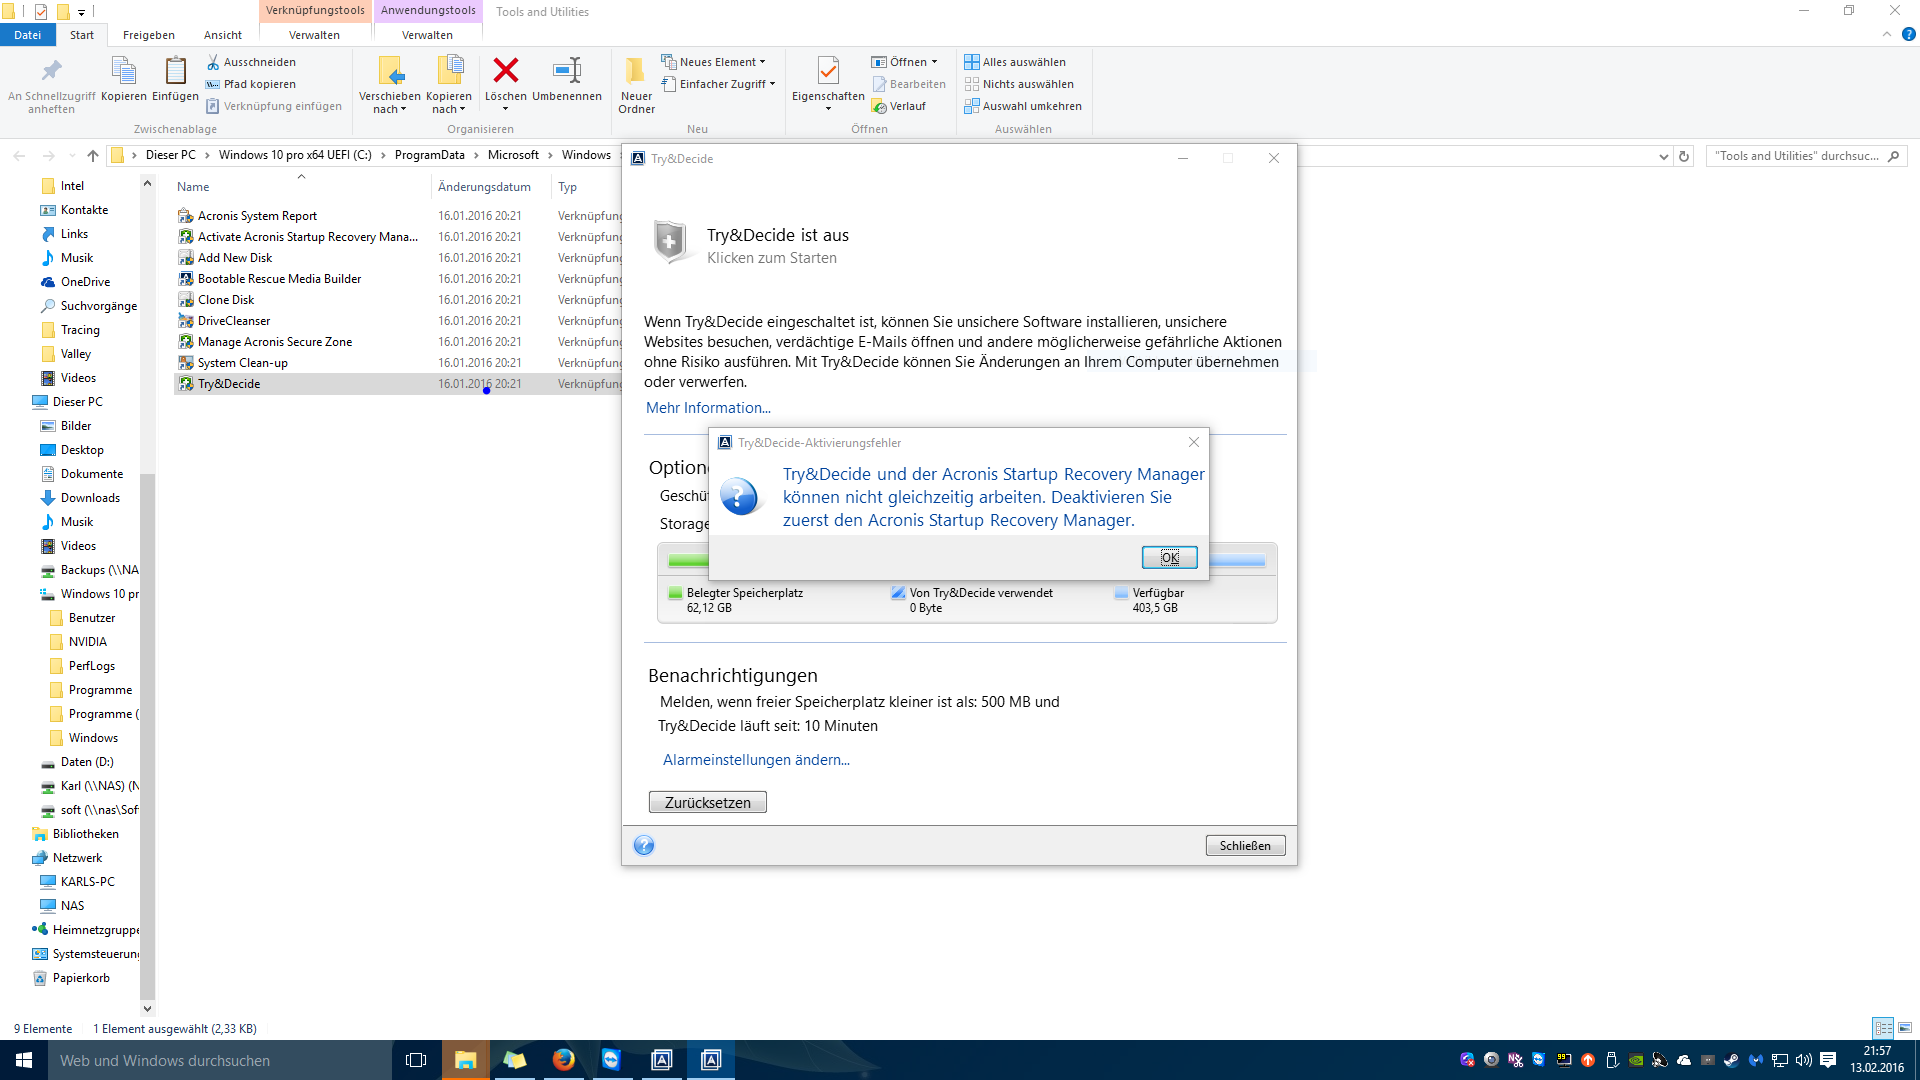 virtual clone drive windows 10 funktioniert nicht